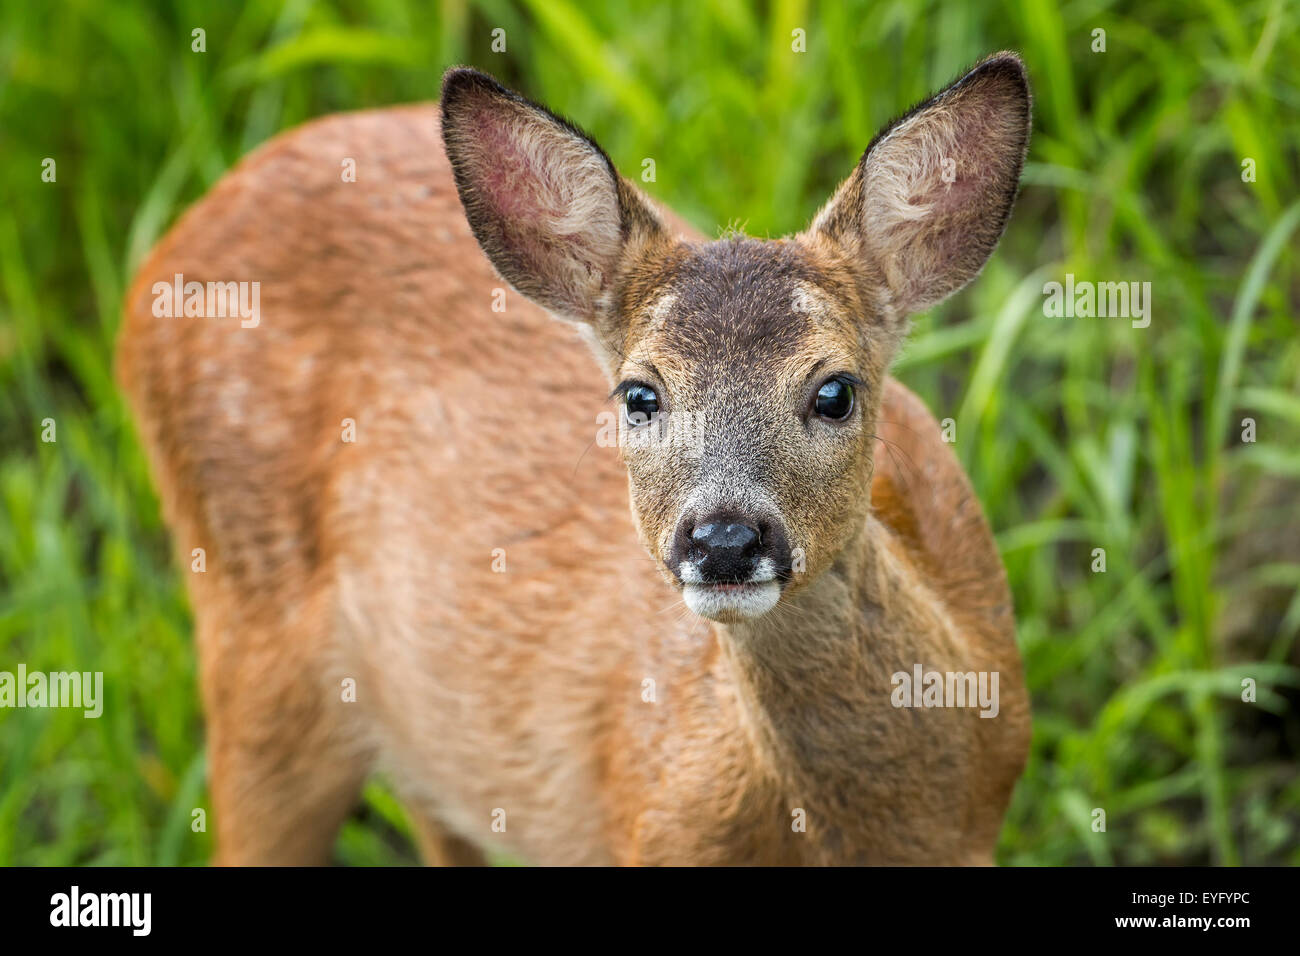 Reh (Capreolus capreolus) captive buck, fawn, portrait, Middle Elbe Biosphere Reserve, Saxony-Anhalt, Germany Stock Photo